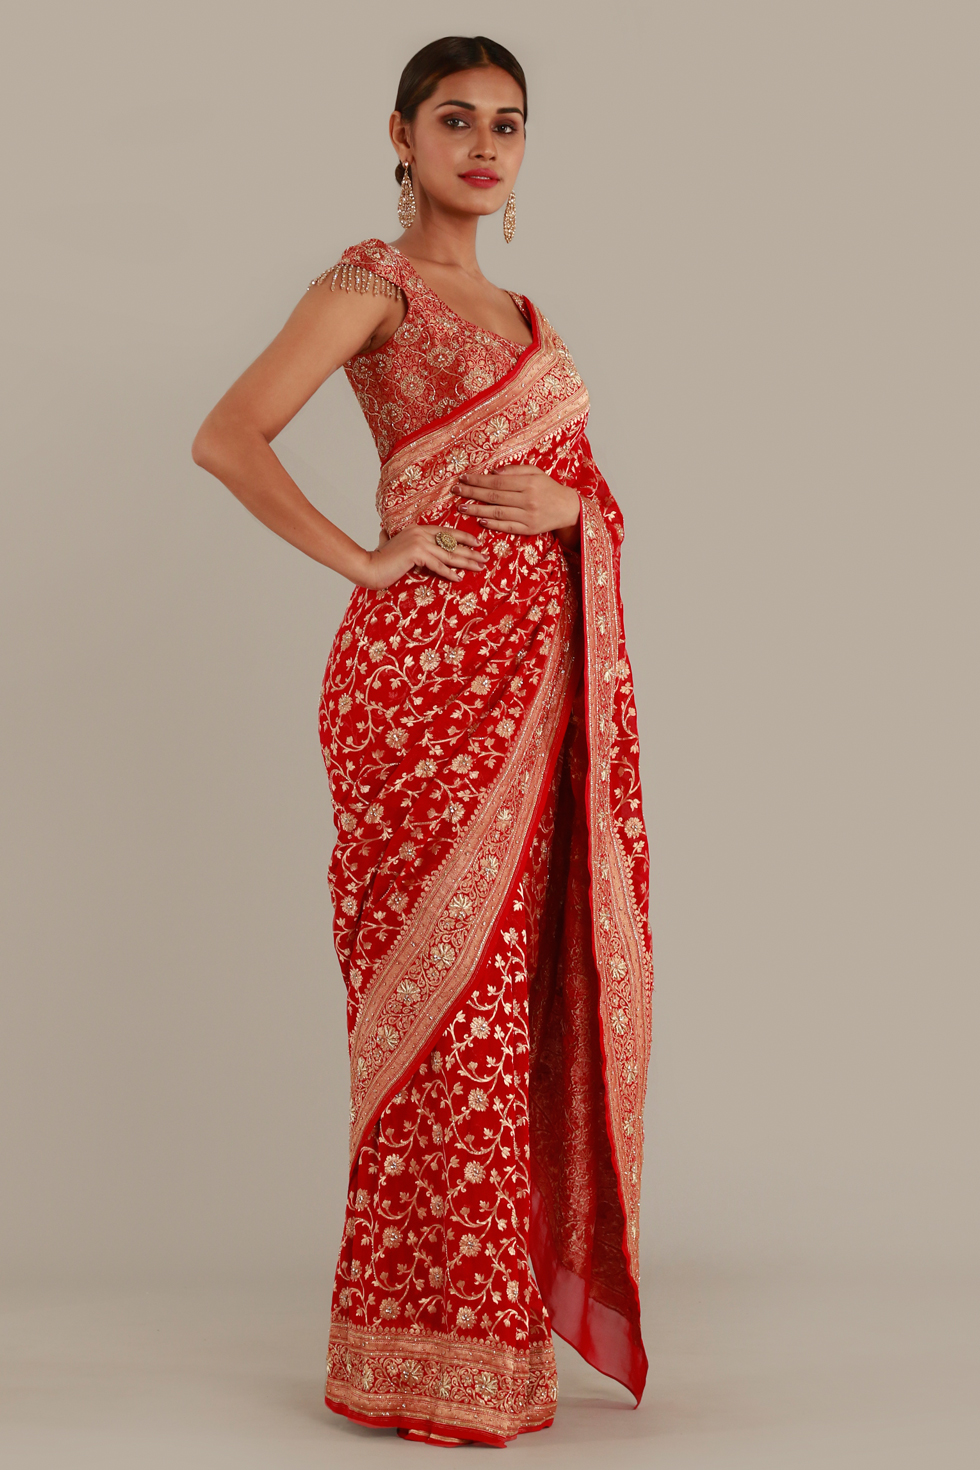 Fiery red saree with gold floral motifs, heavy border and matching blouse with gold embellishments and tassels